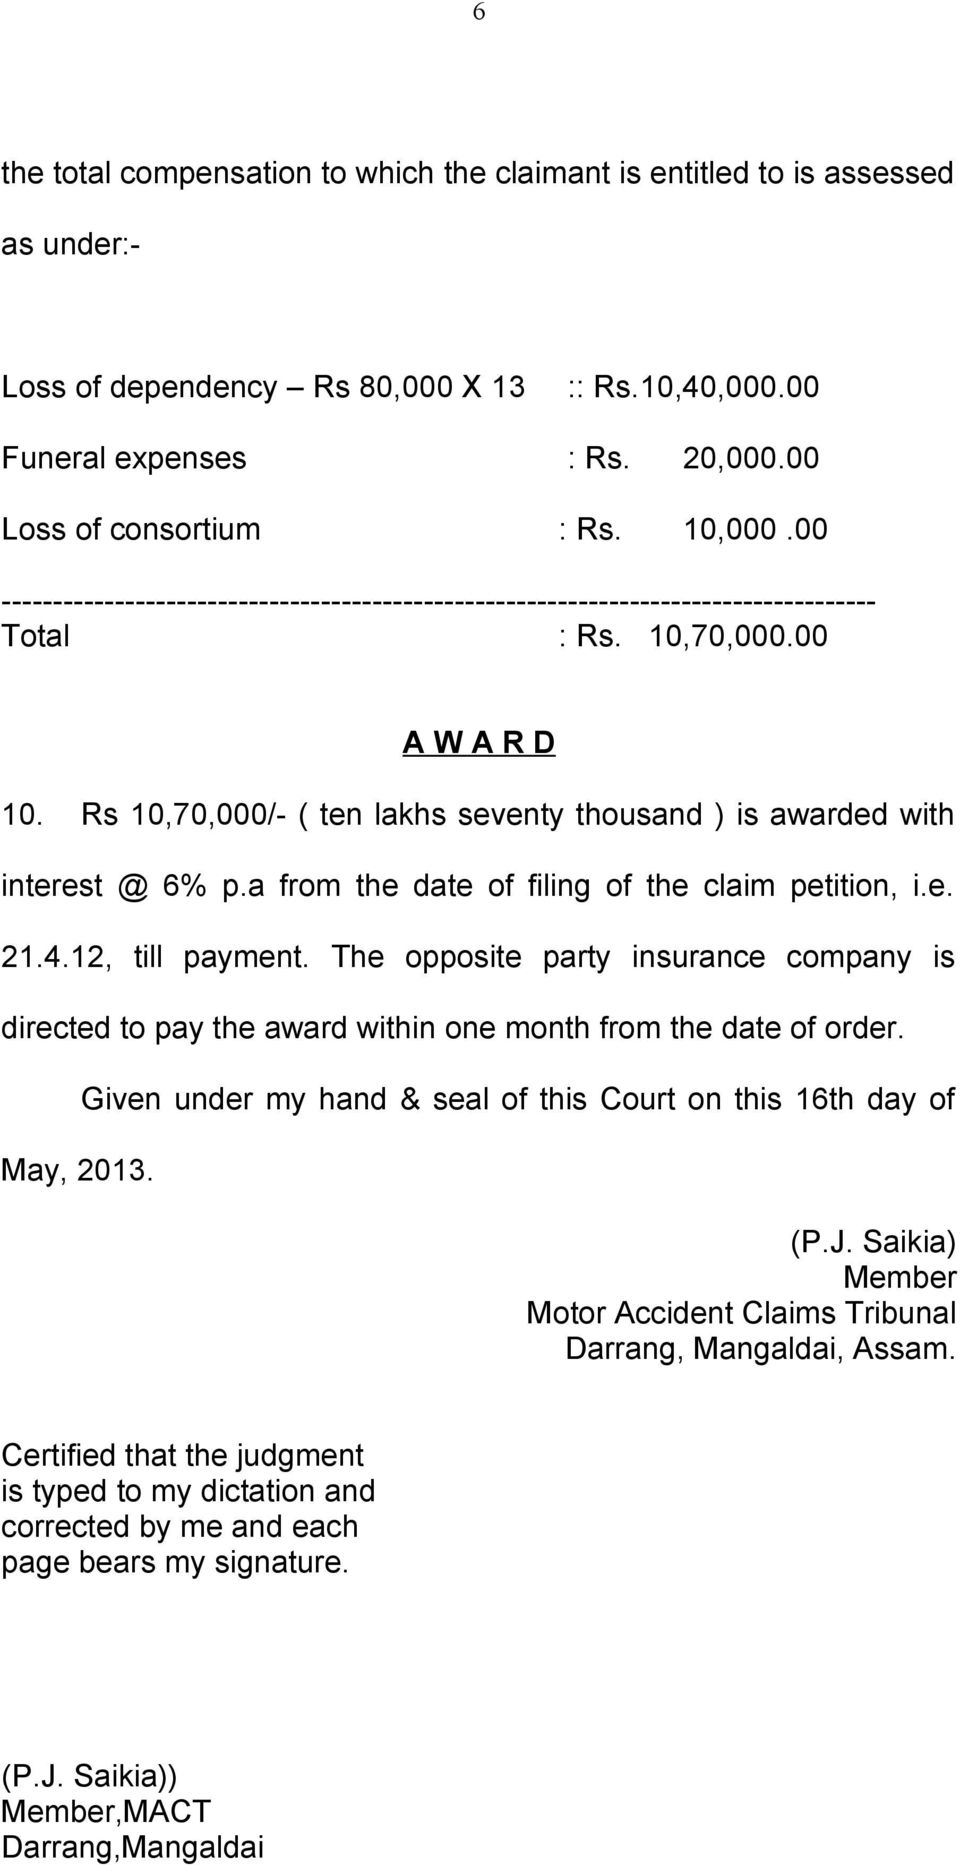 Rs 10,70,000/- ( ten lakhs seventy thousand ) is awarded with interest @ 6% p.a from the date of filing of the claim petition, i.e. 21.4.12, till payment.